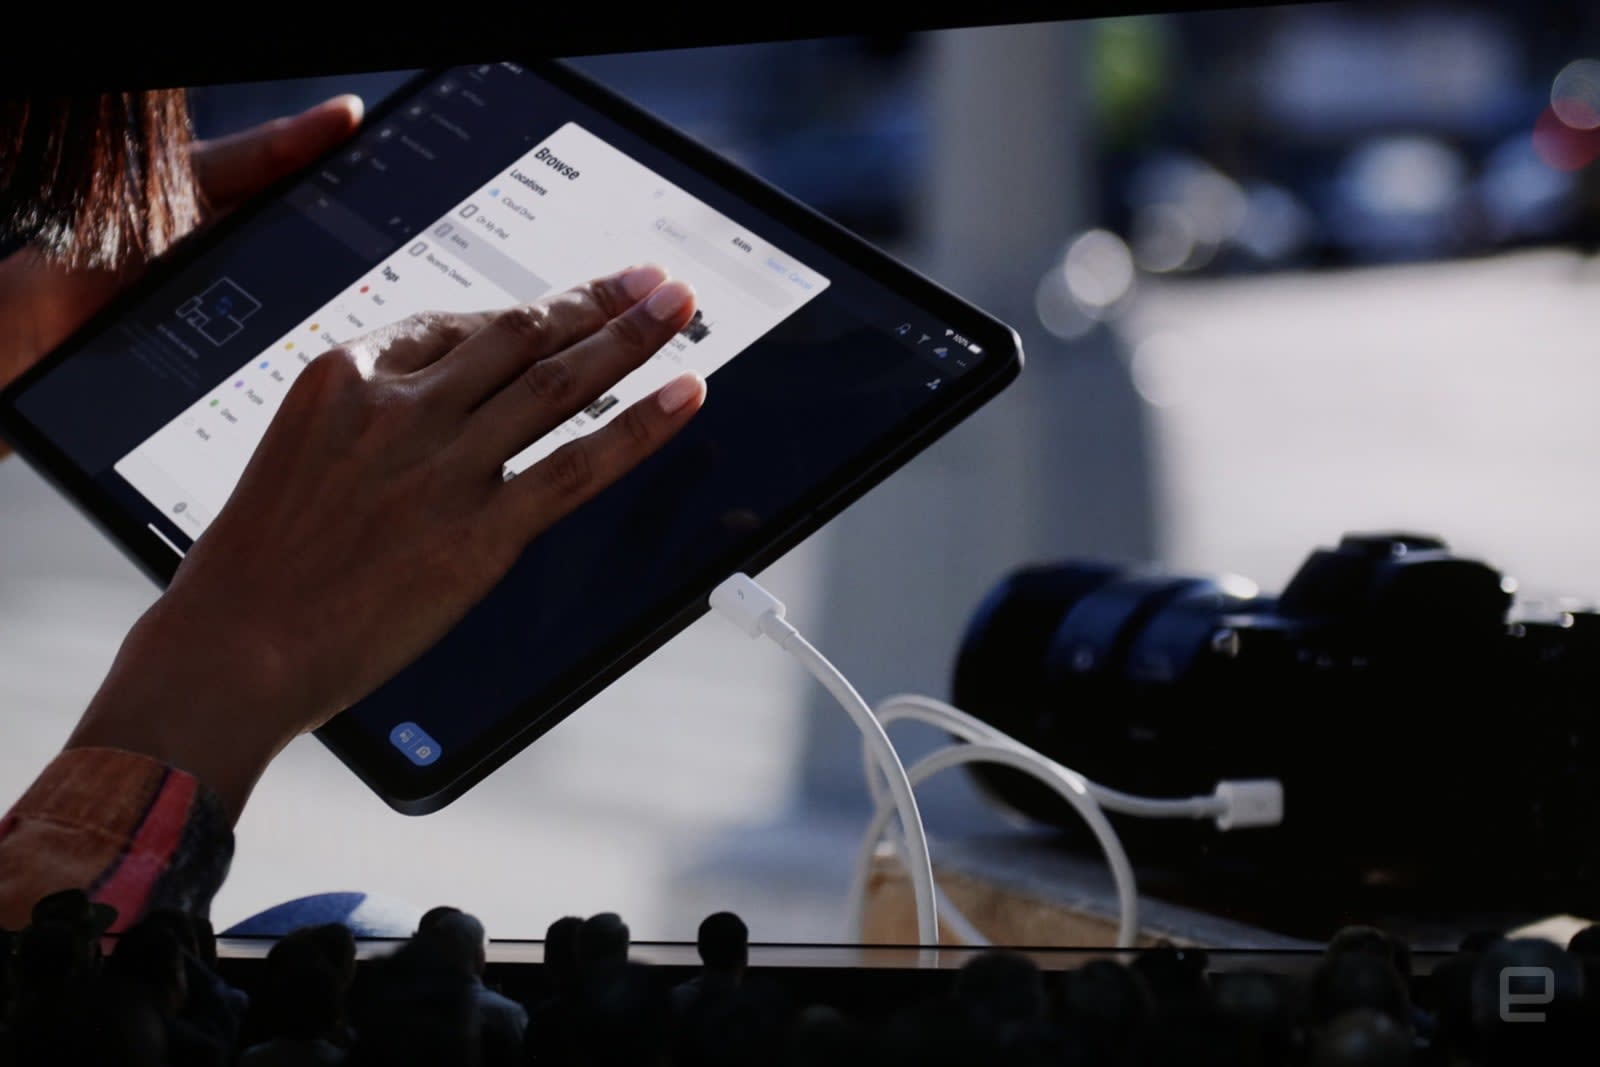 The new iPad Files app is actually useful for managing files